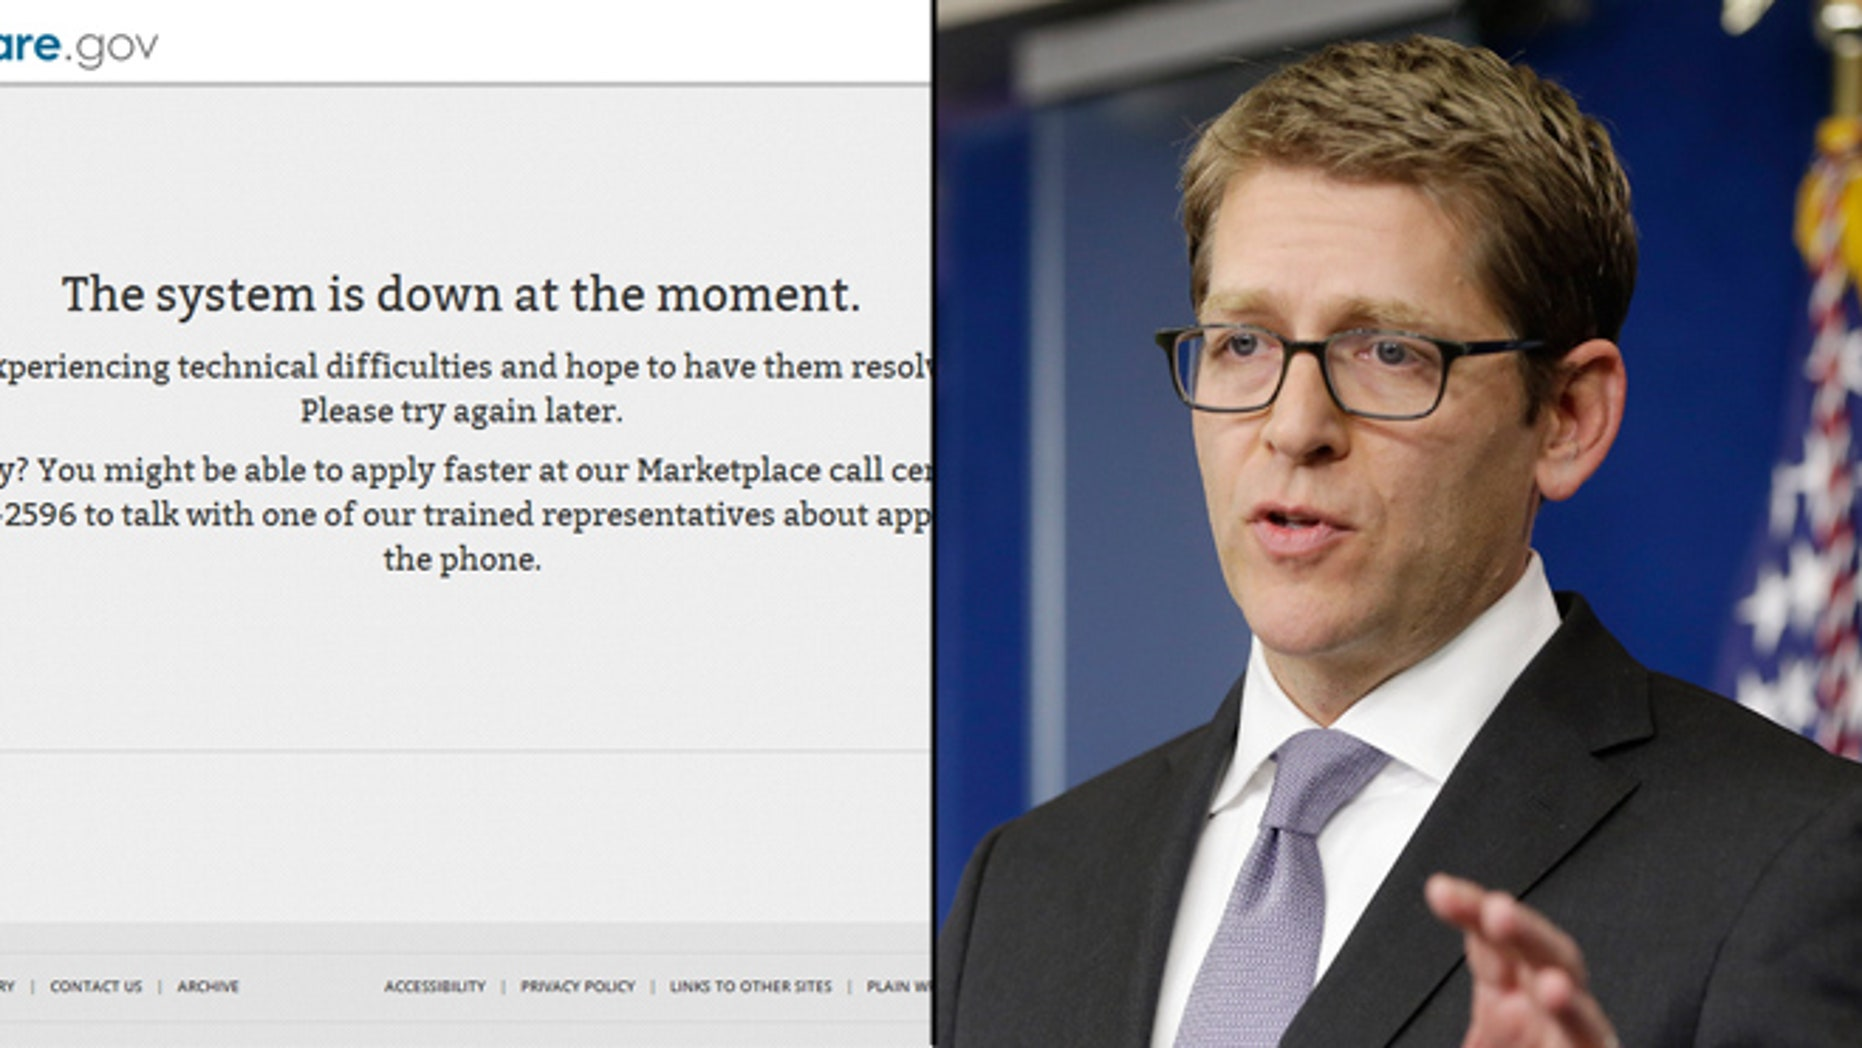 Shown at left is a screen from the HealthCare.gov website. At right, White House Press Secretary Jay Carney.